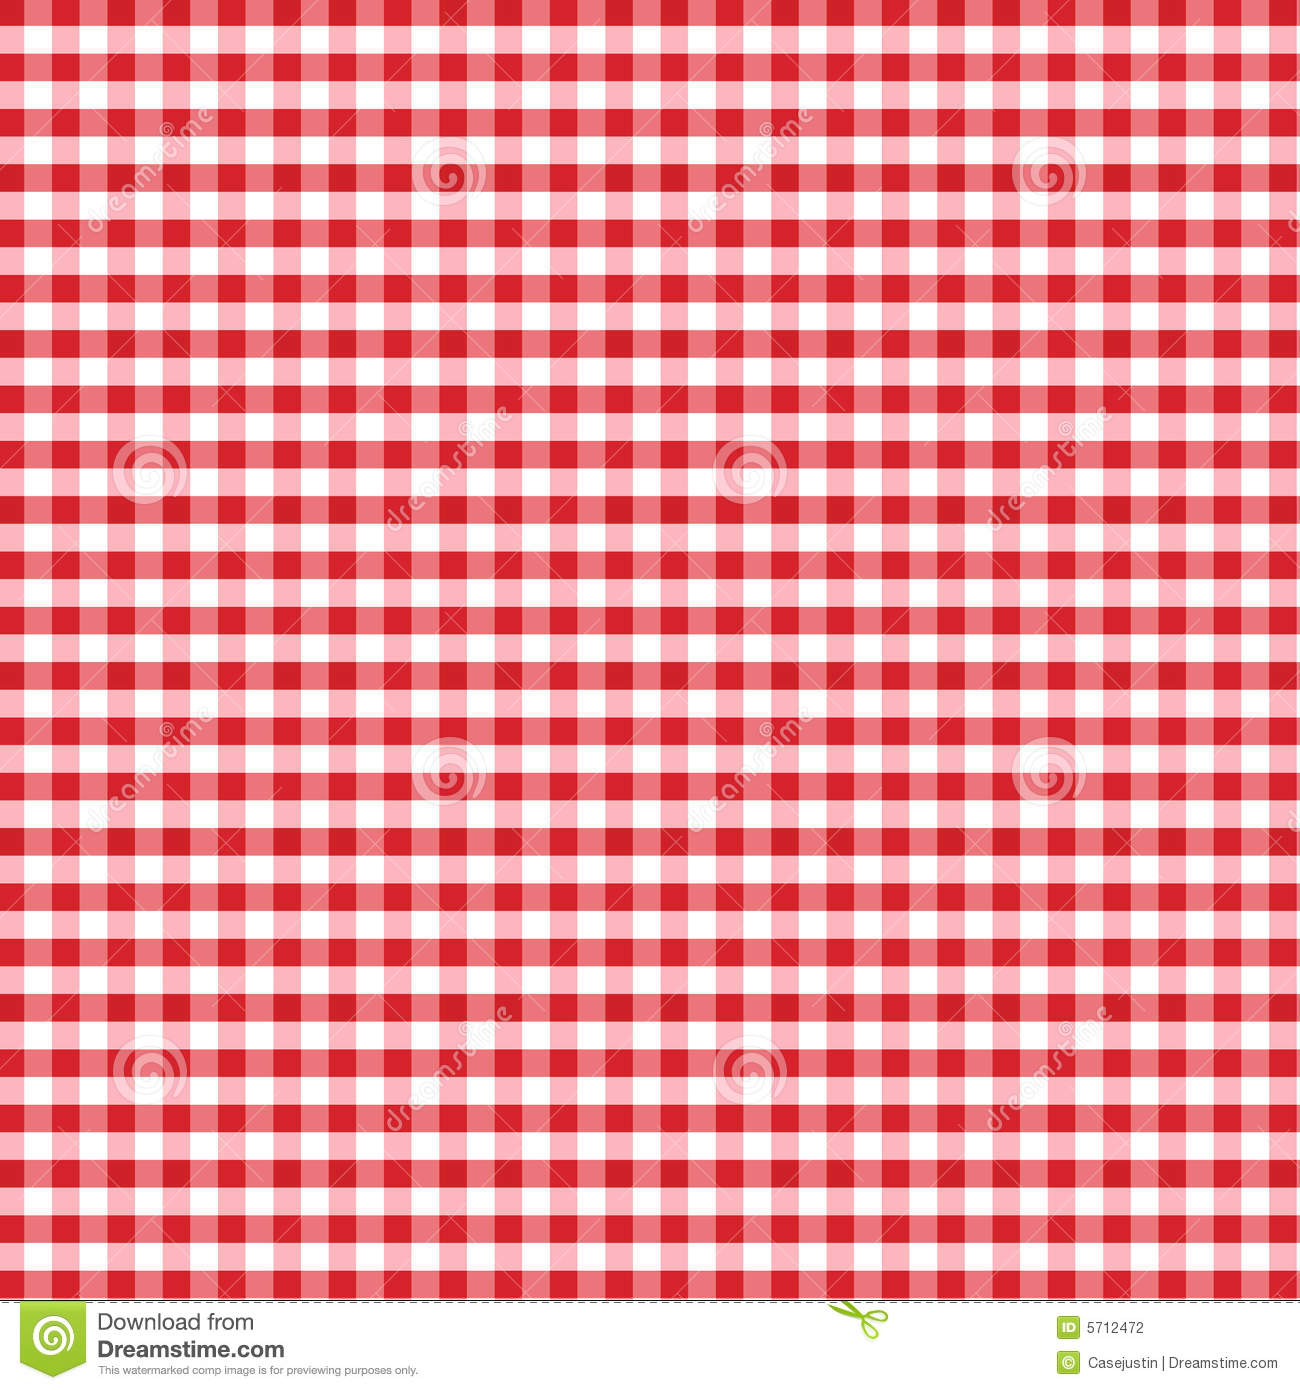 wallpaper waverly red check - photo #48